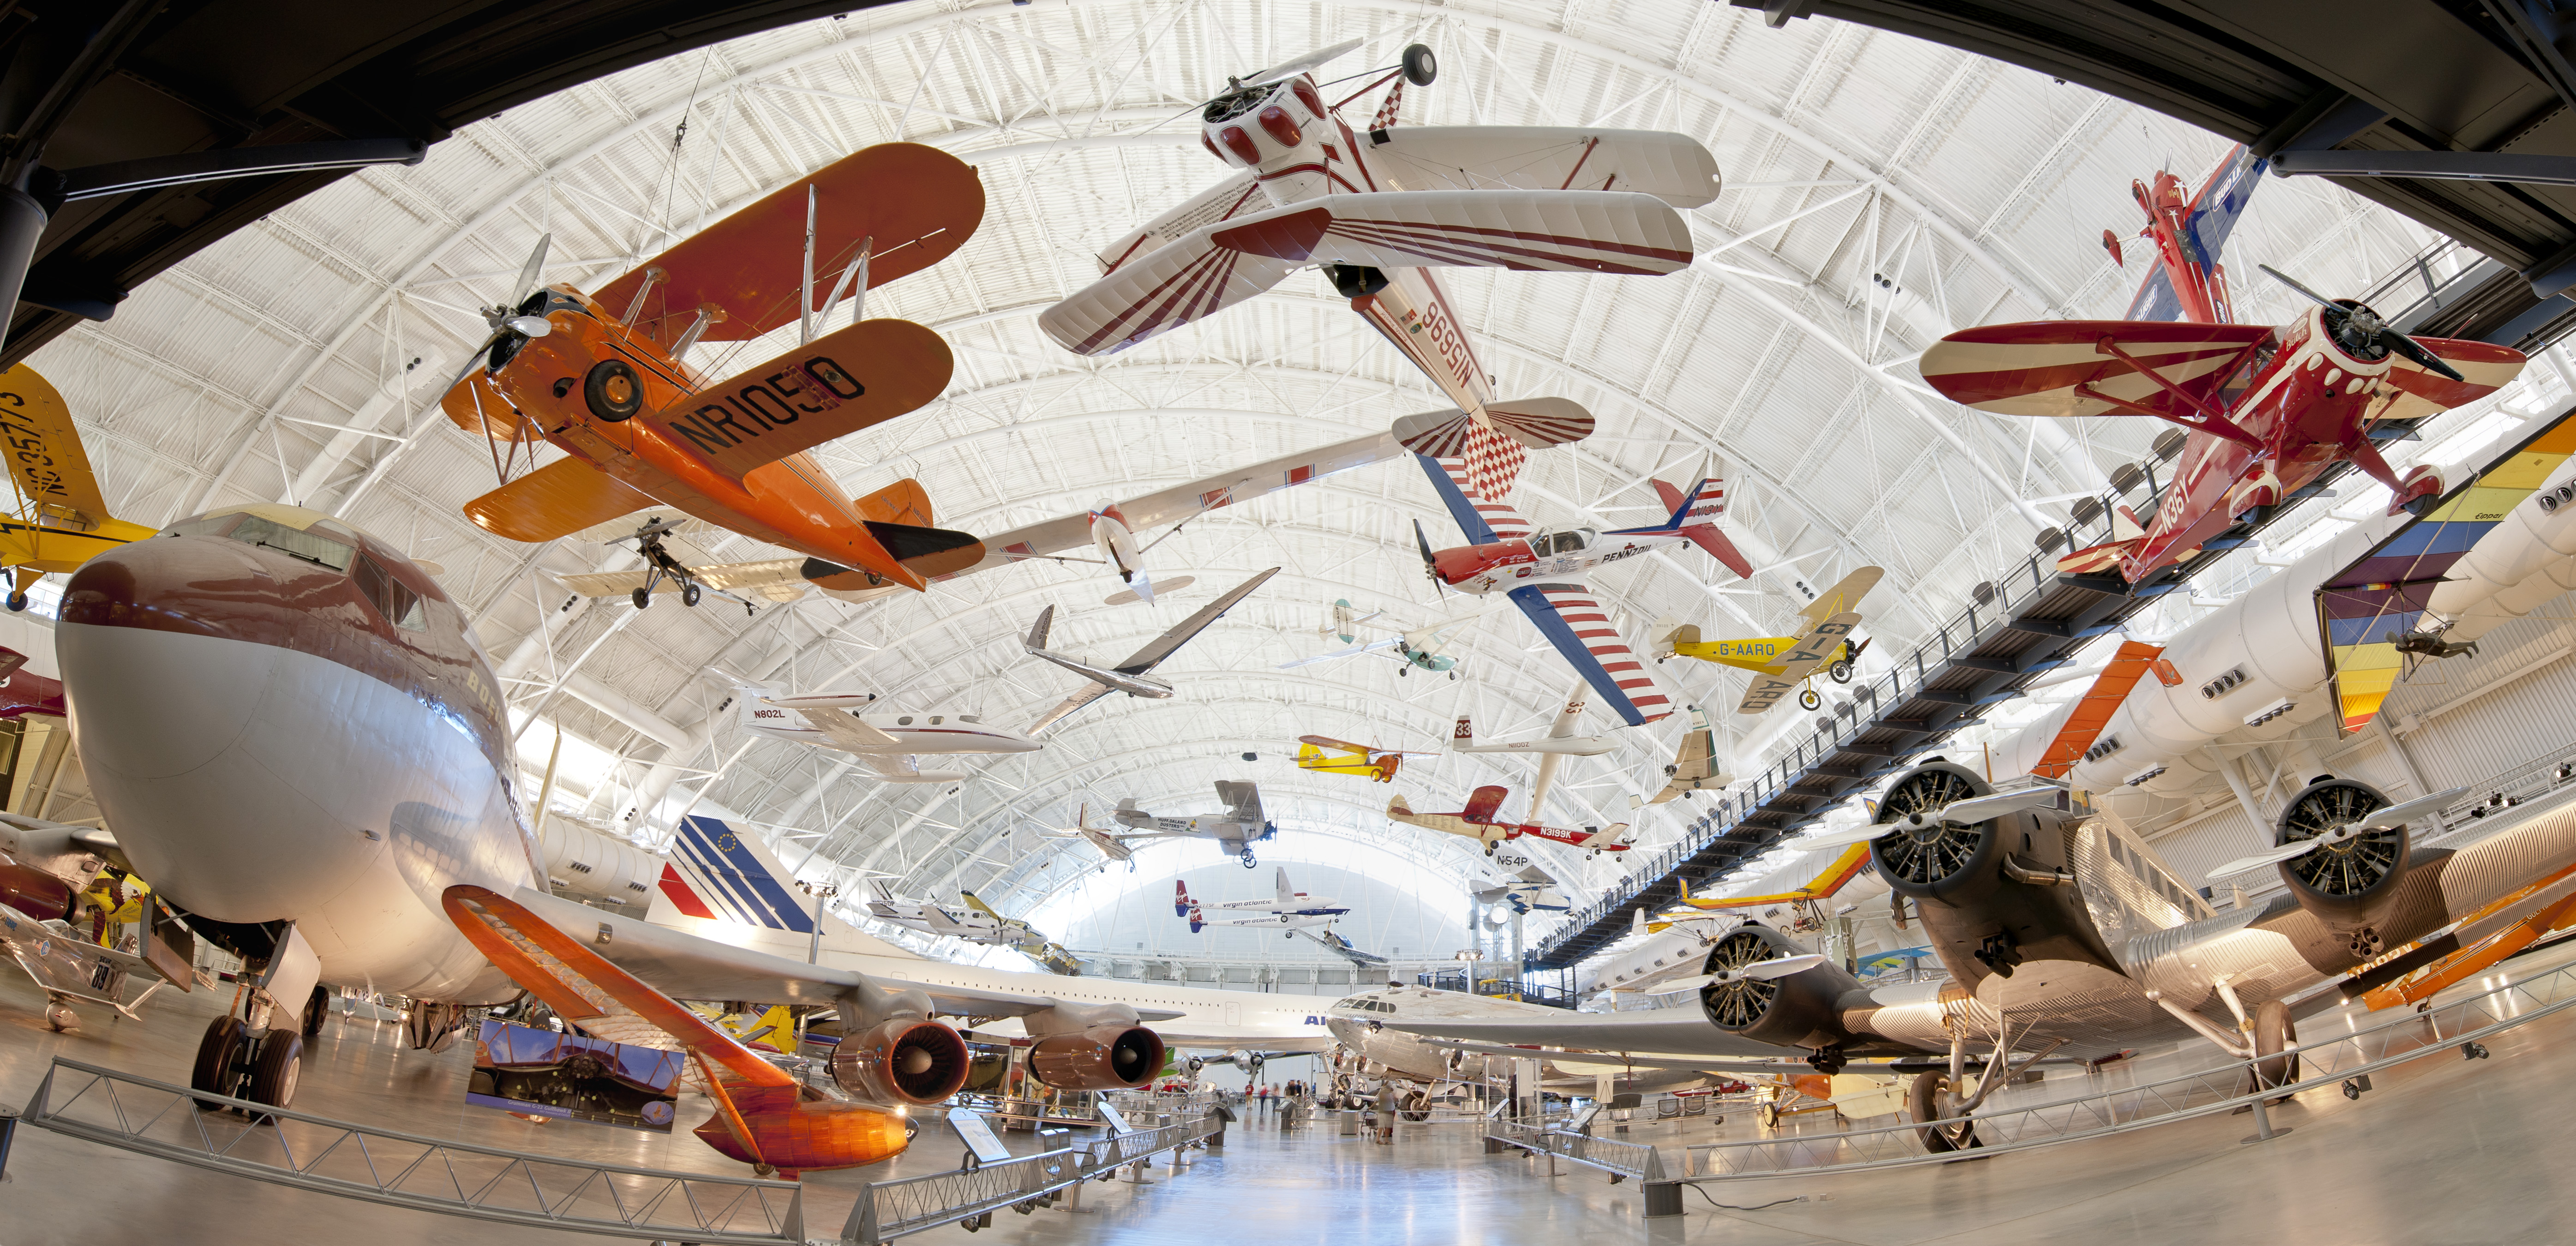 The Boeing Aviation Hangar at the Udvar-Hazy Center in Chantilly, VA.